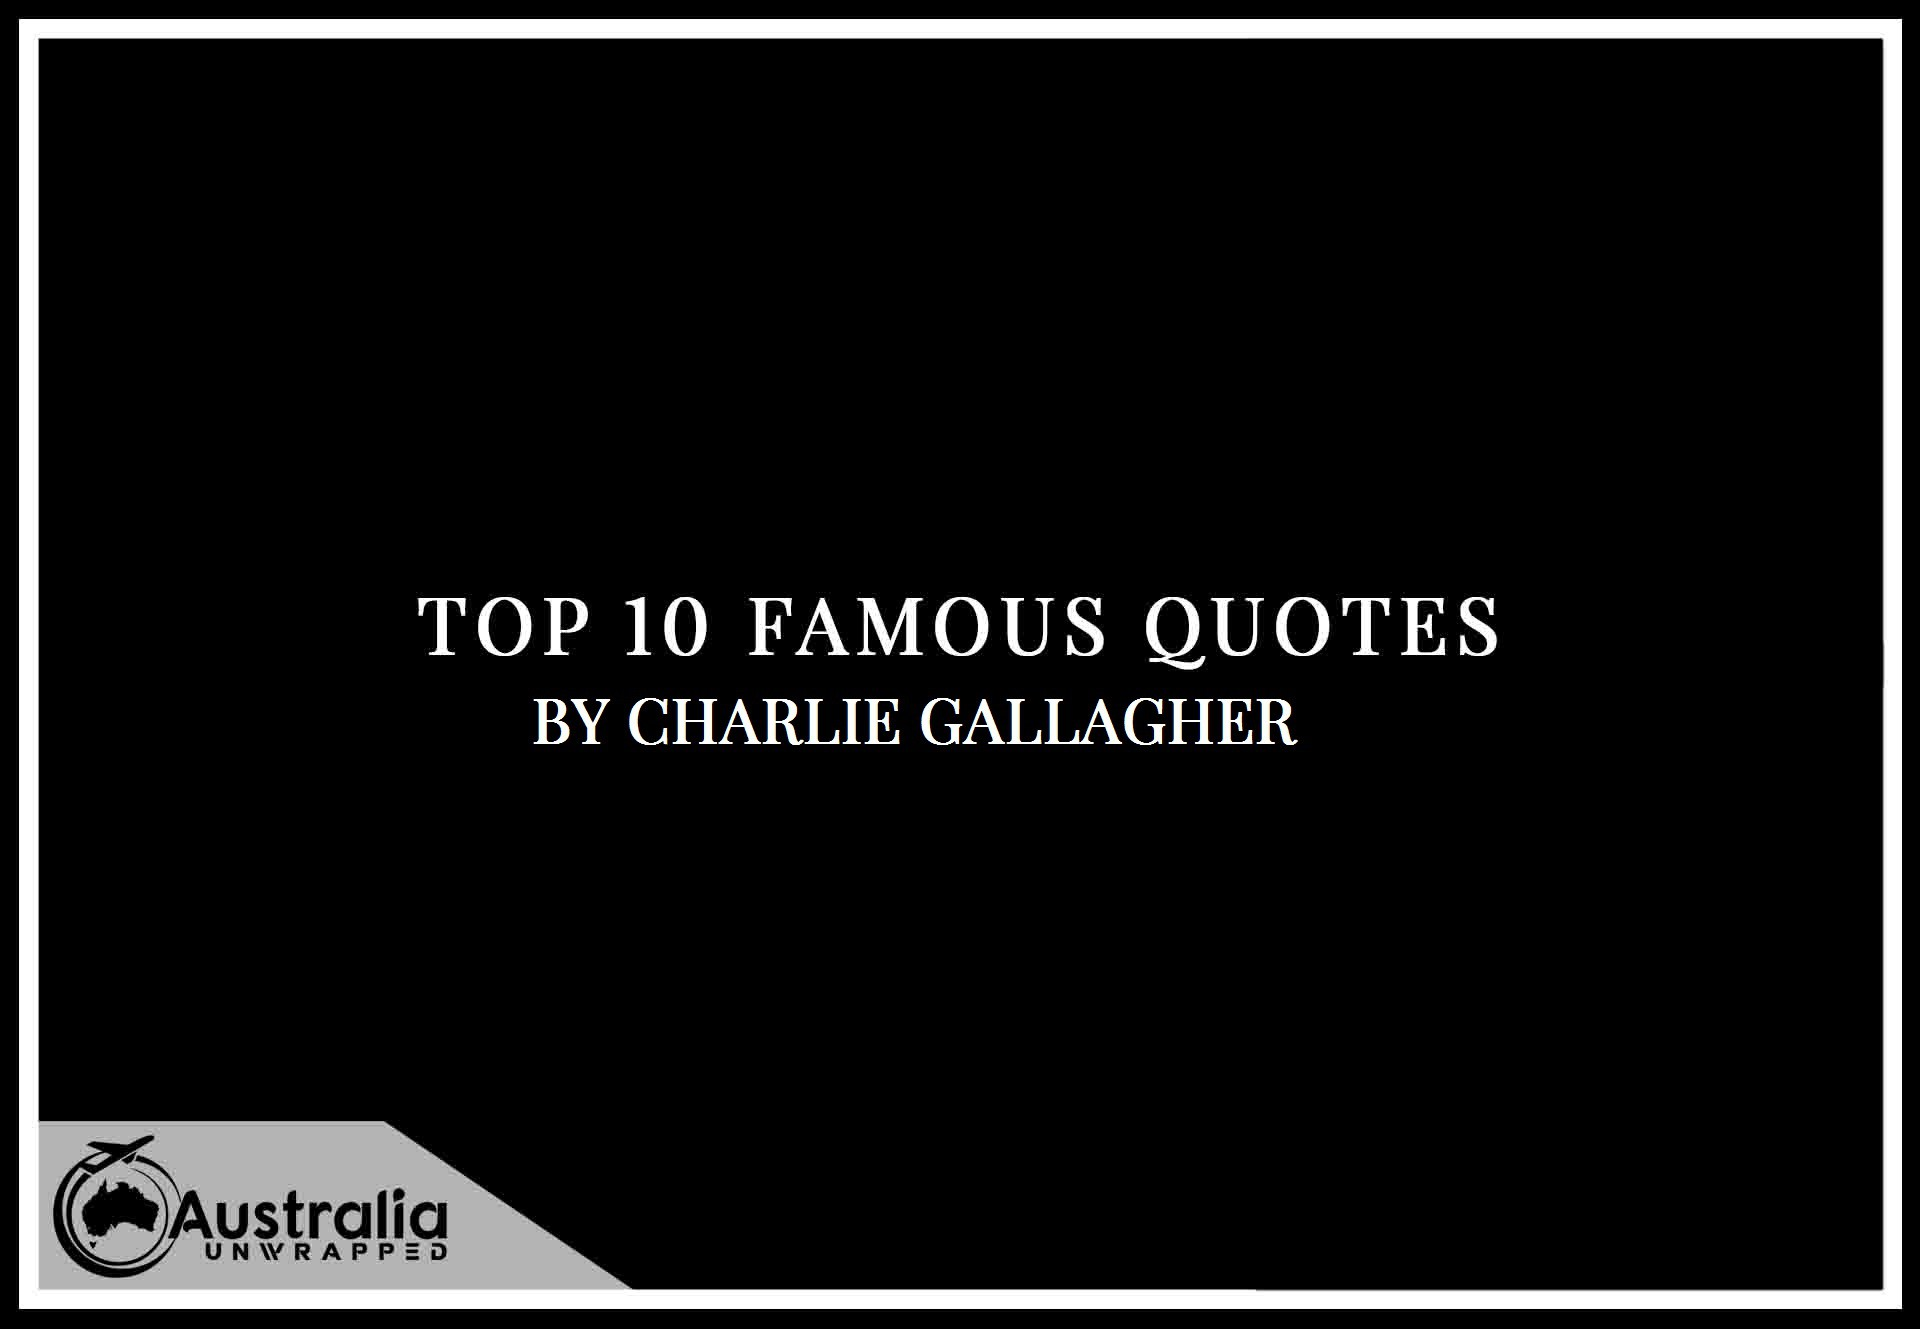 Charlie Gallagher's Top 10 Popular and Famous Quotes